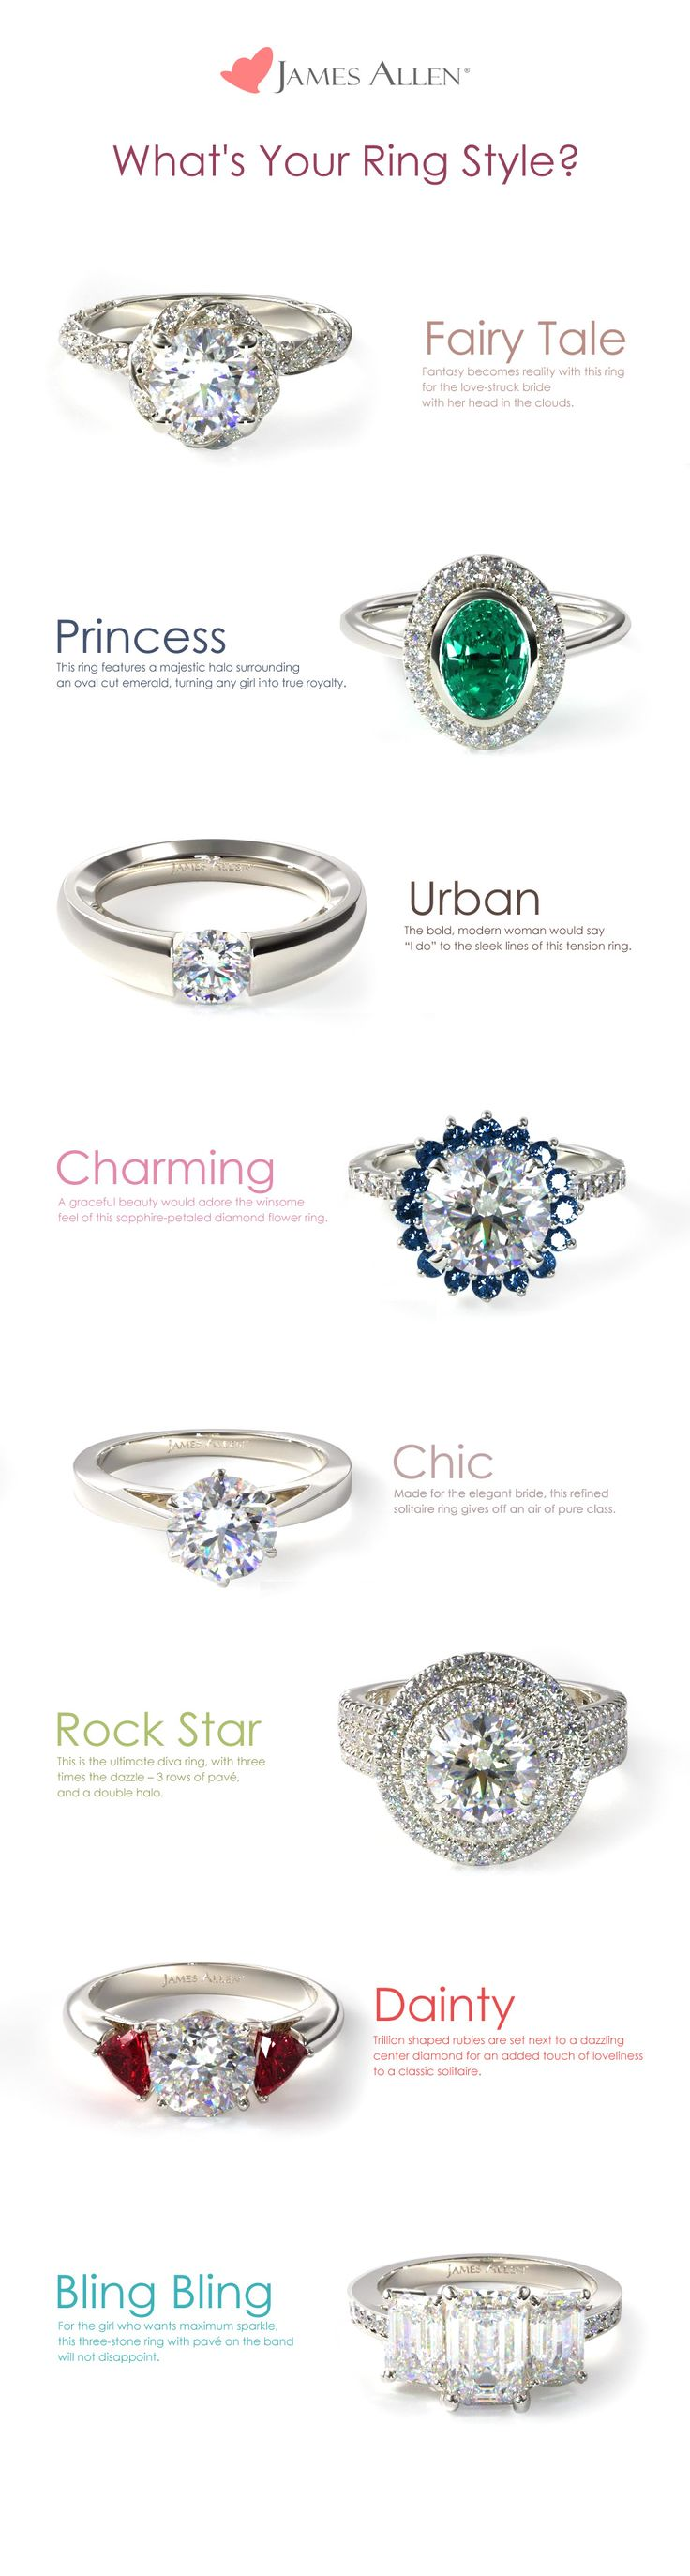 What's Your Ring Style? Is your dream engagement ring Fairy Tale, Princess, Urban, Charming, Chic, Rock Star, Dainty or Bling Bling? Whatever it may be, you can find it at www.jamesallen.com!   Which style would you pick?? #jamesallenrings